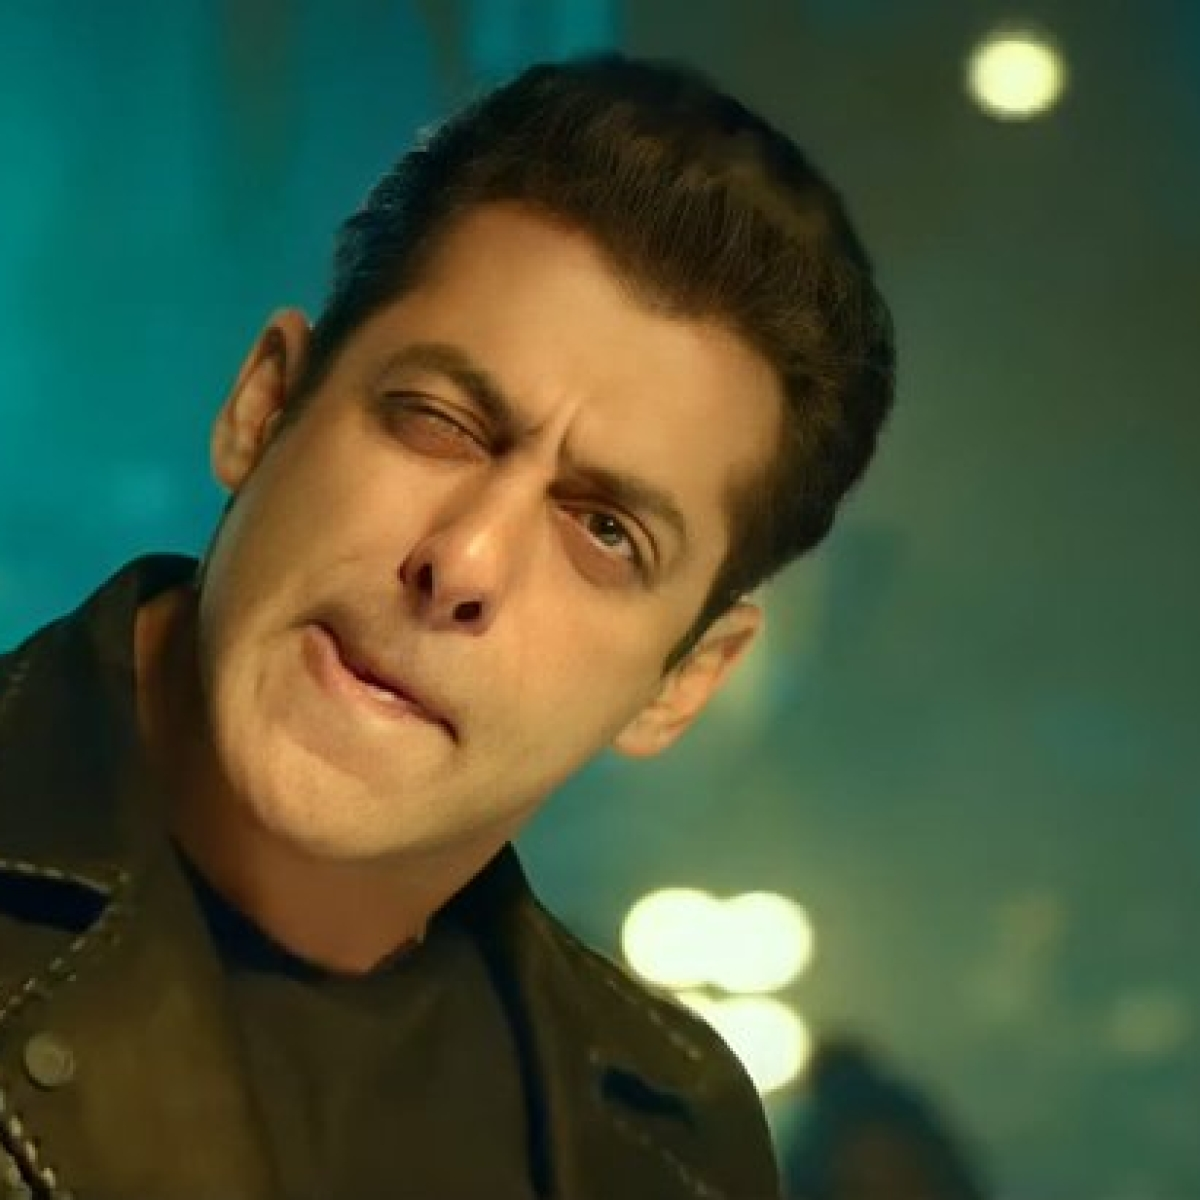 'People are dying, uncle is busy promoting his movie': Salman Khan announces advance booking of 'Radhe' in UAE, gets trolled